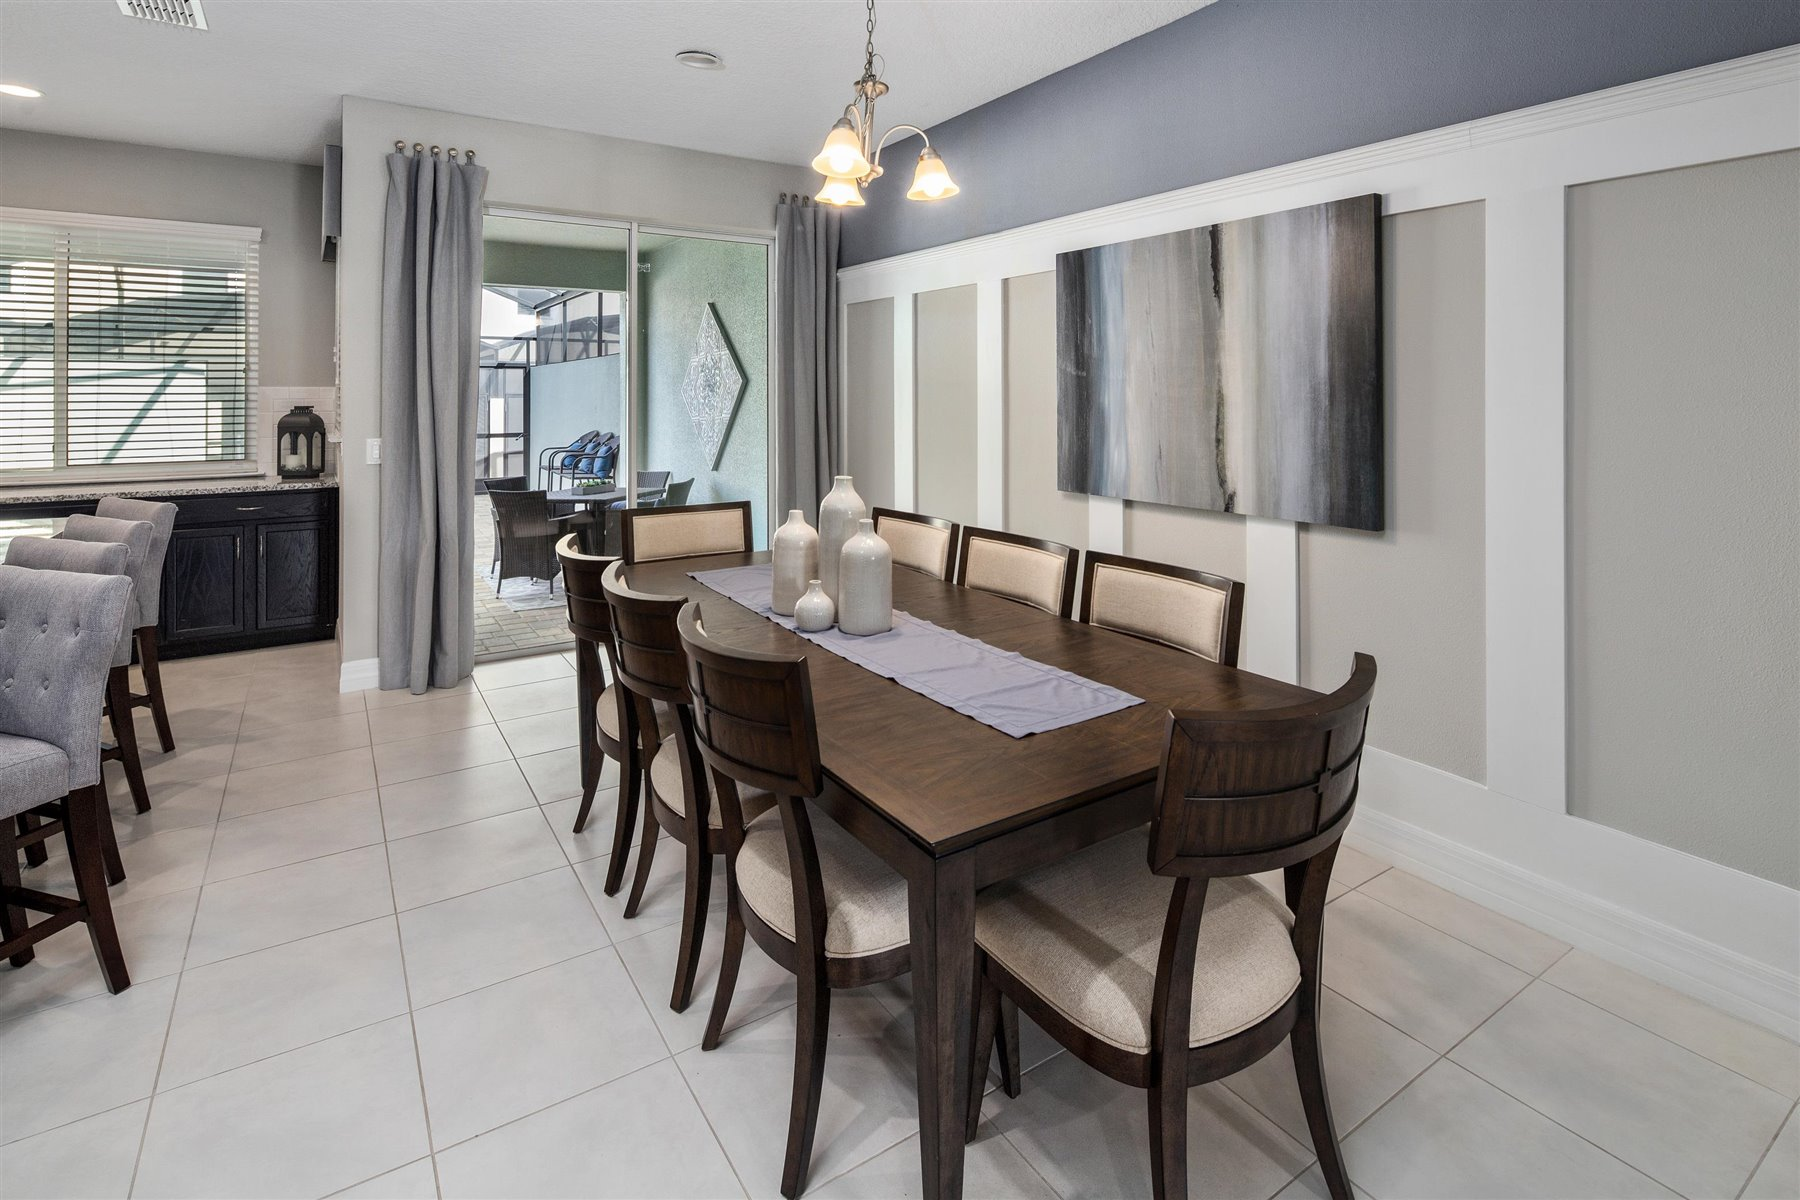 Clearwater Plan Dining at Solara Resort in Kissimmee Florida by Mattamy Homes